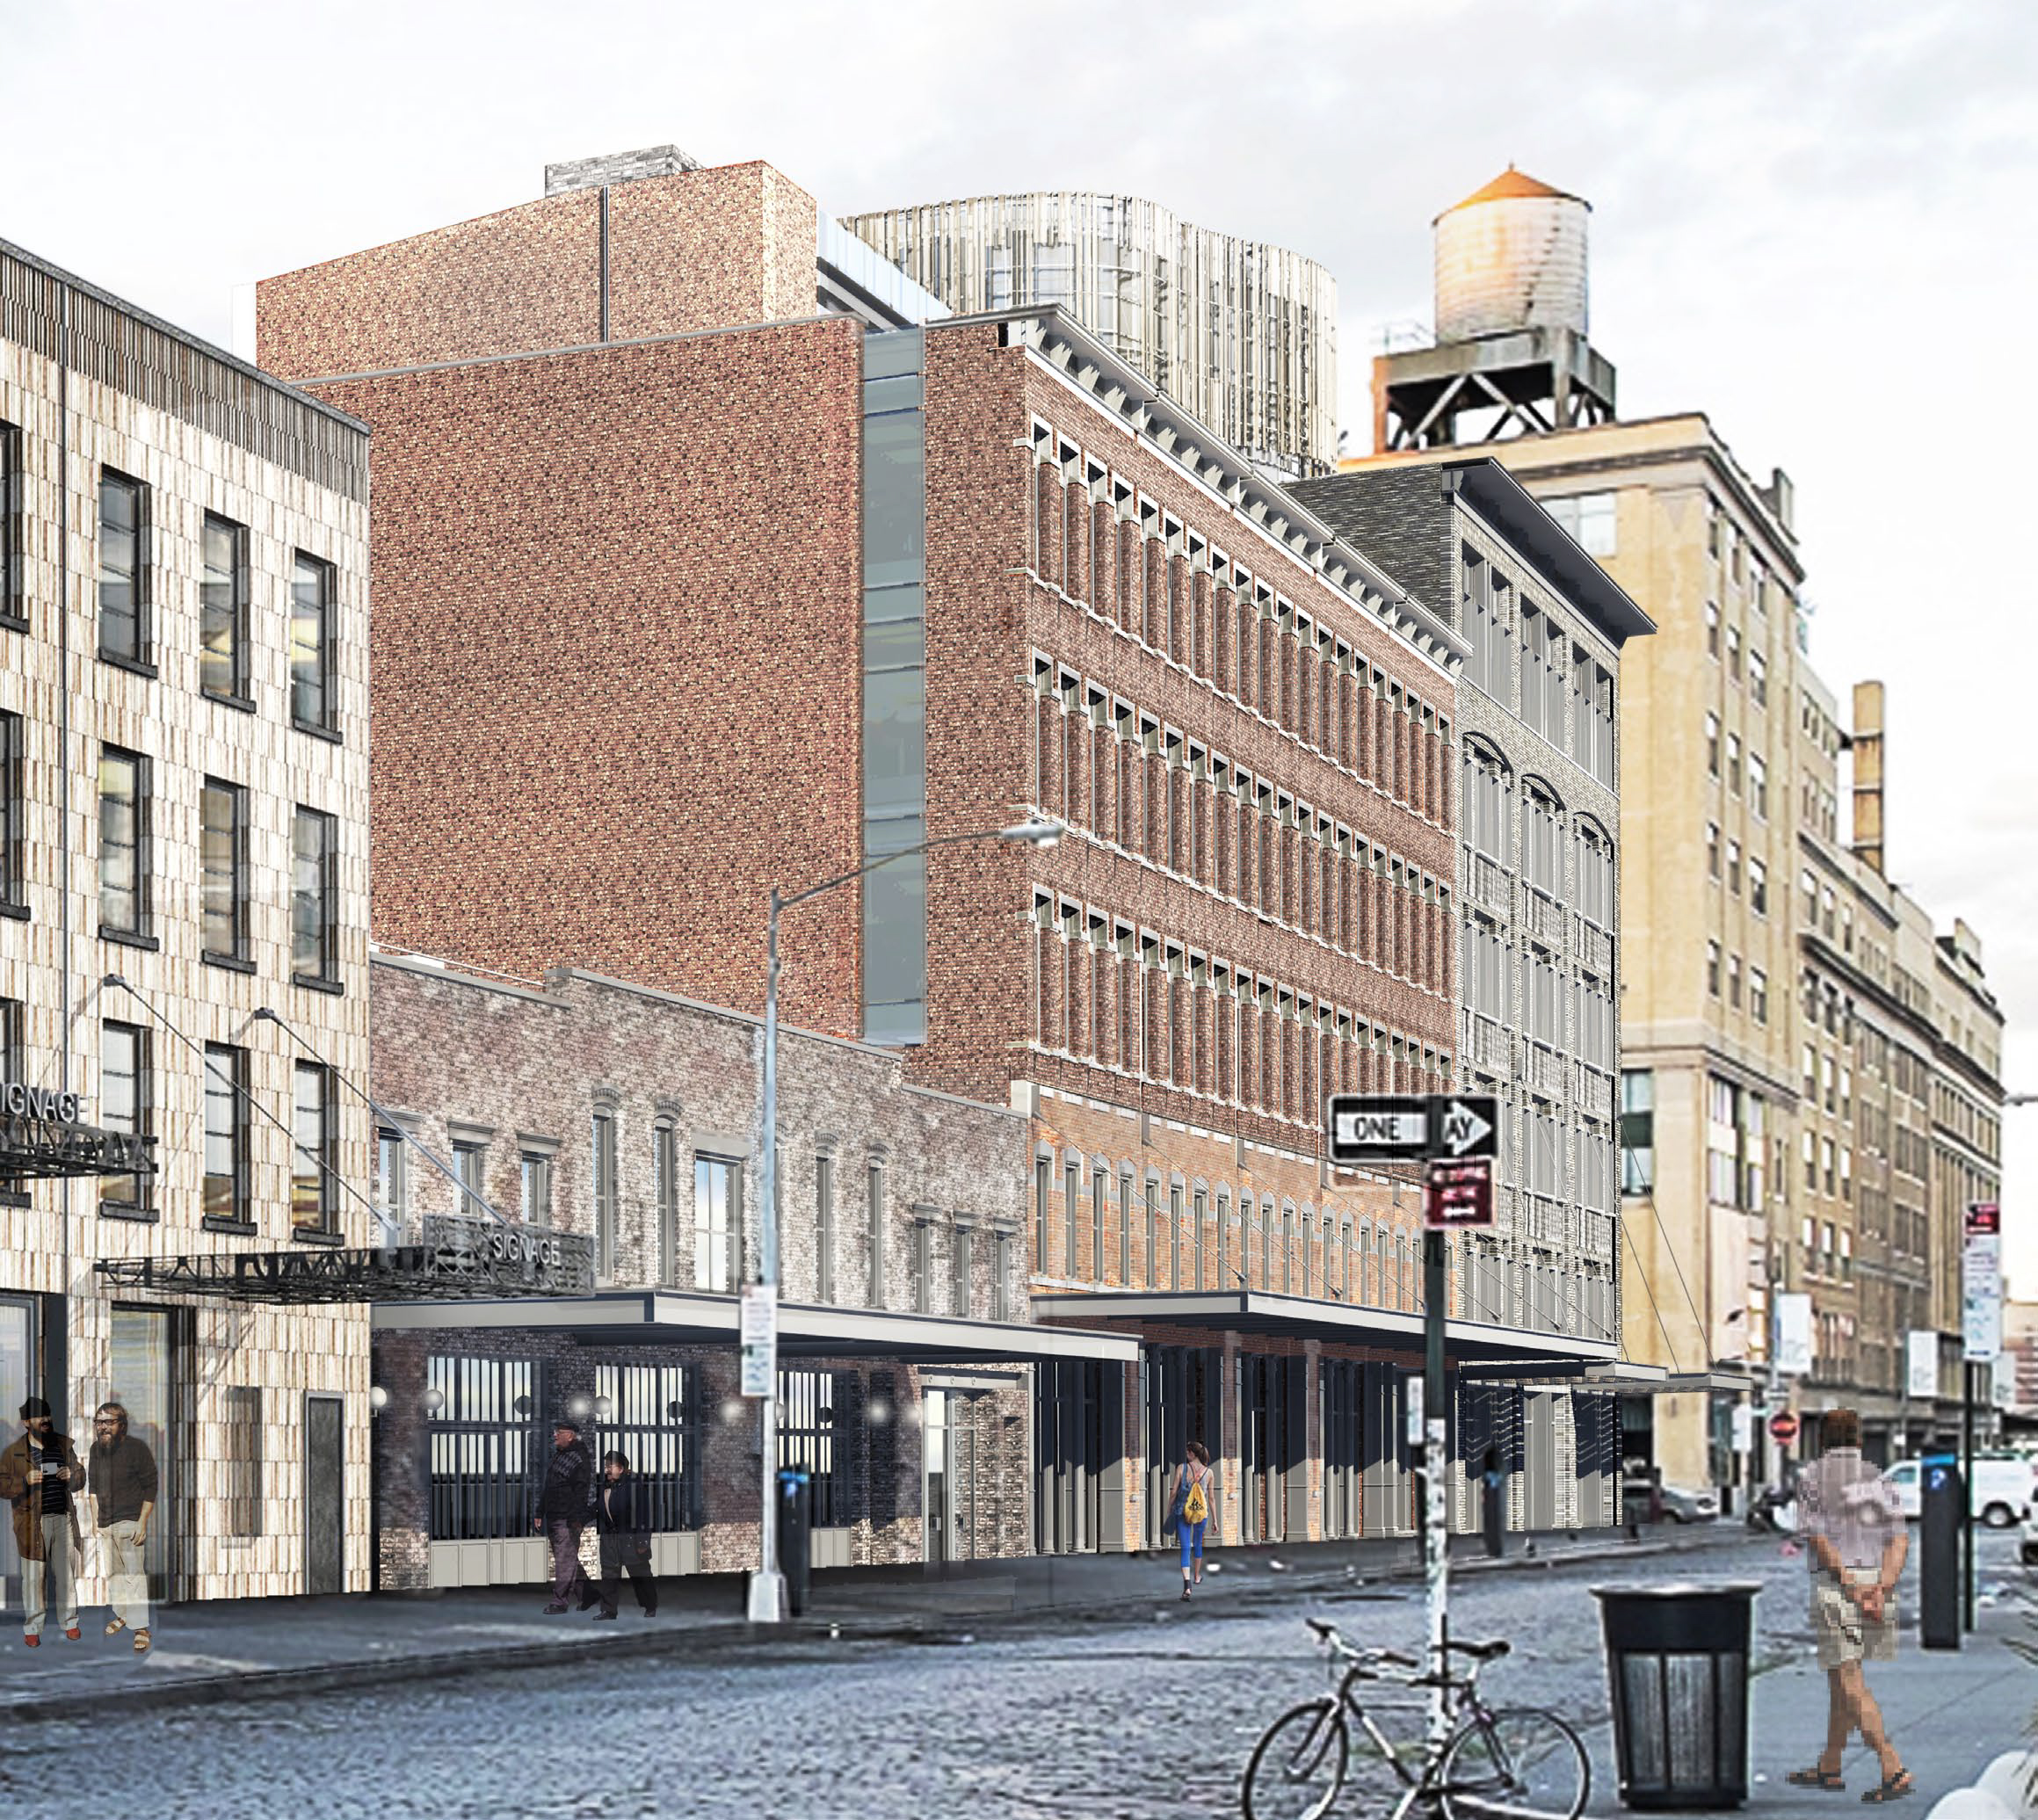 Previous proposal for 60-68 Gansevoort Street